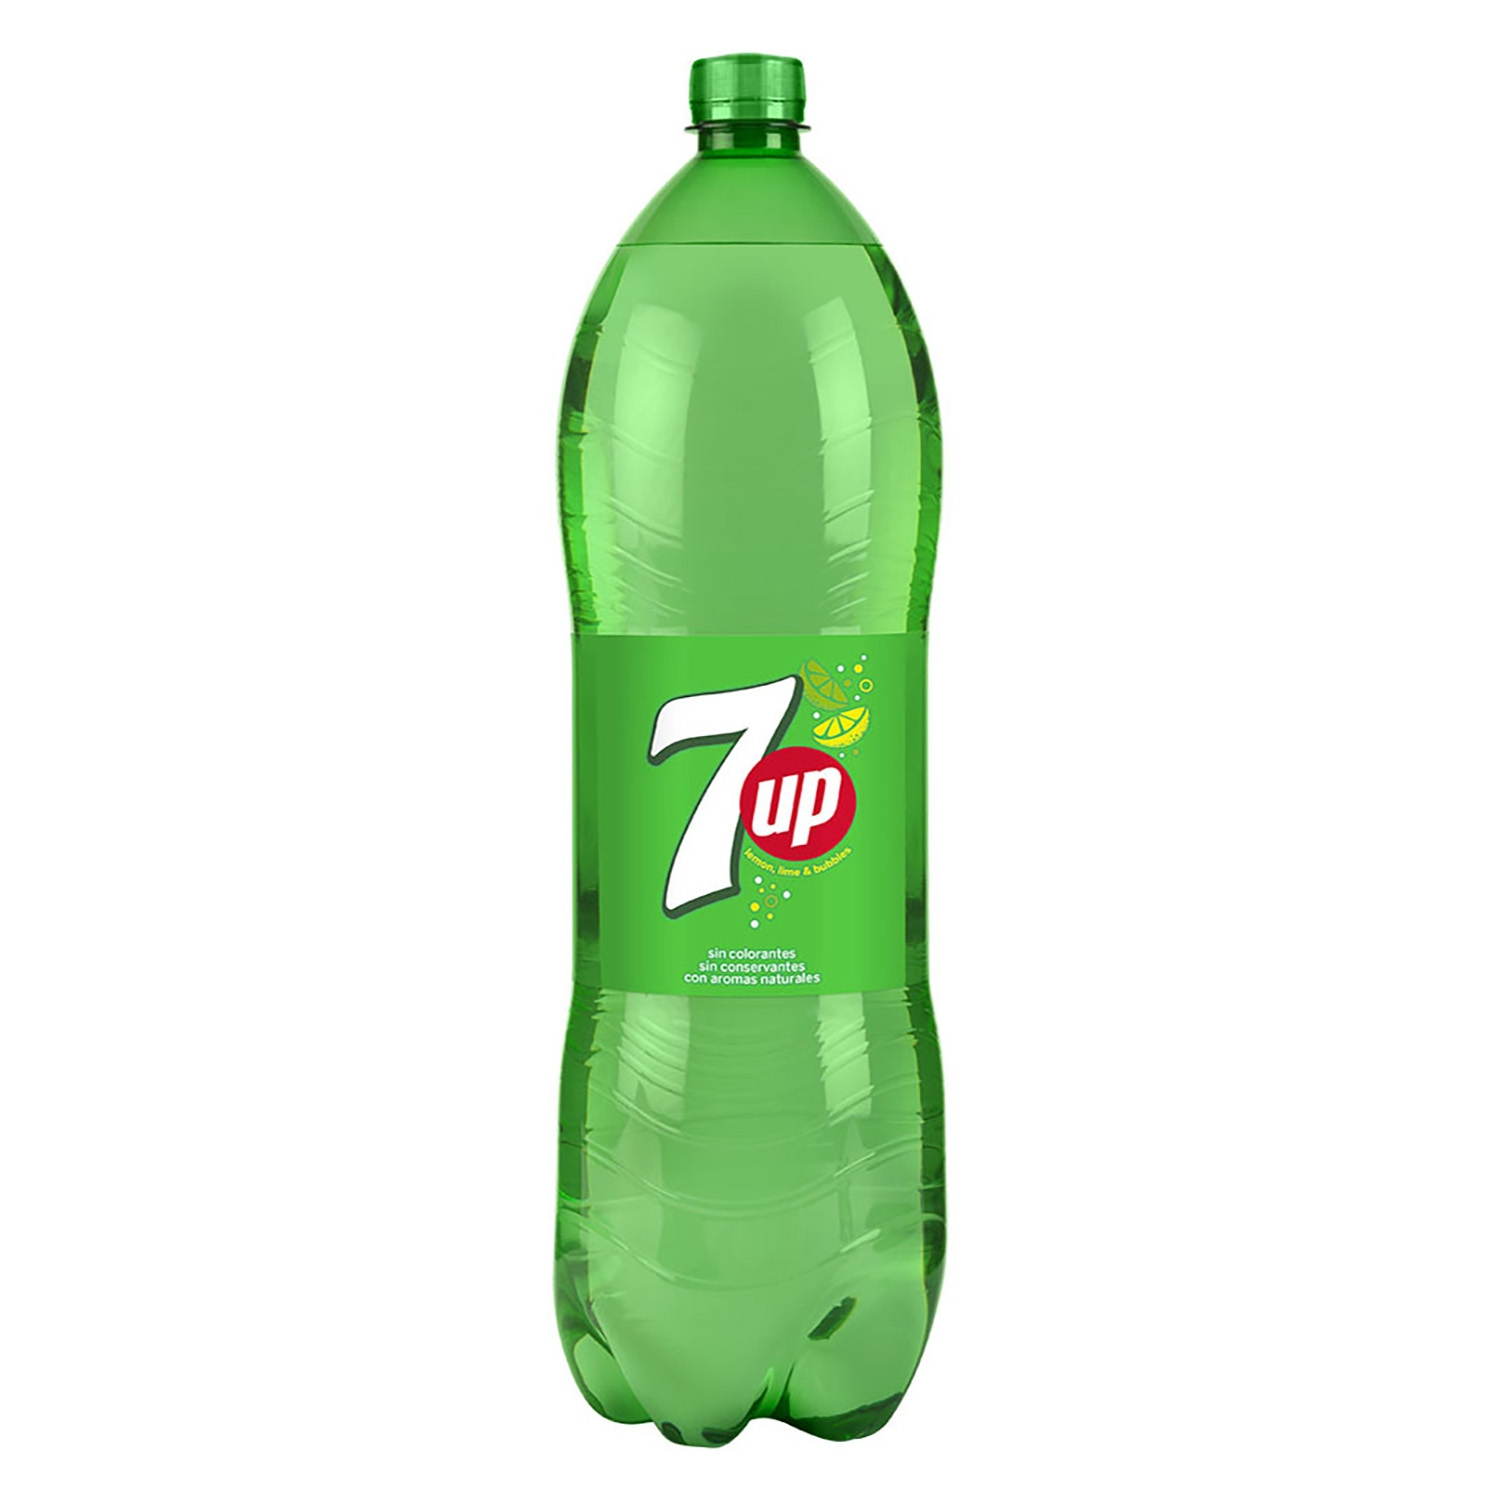 Refresco de lima-limón 7UP con gas botella 2 l.